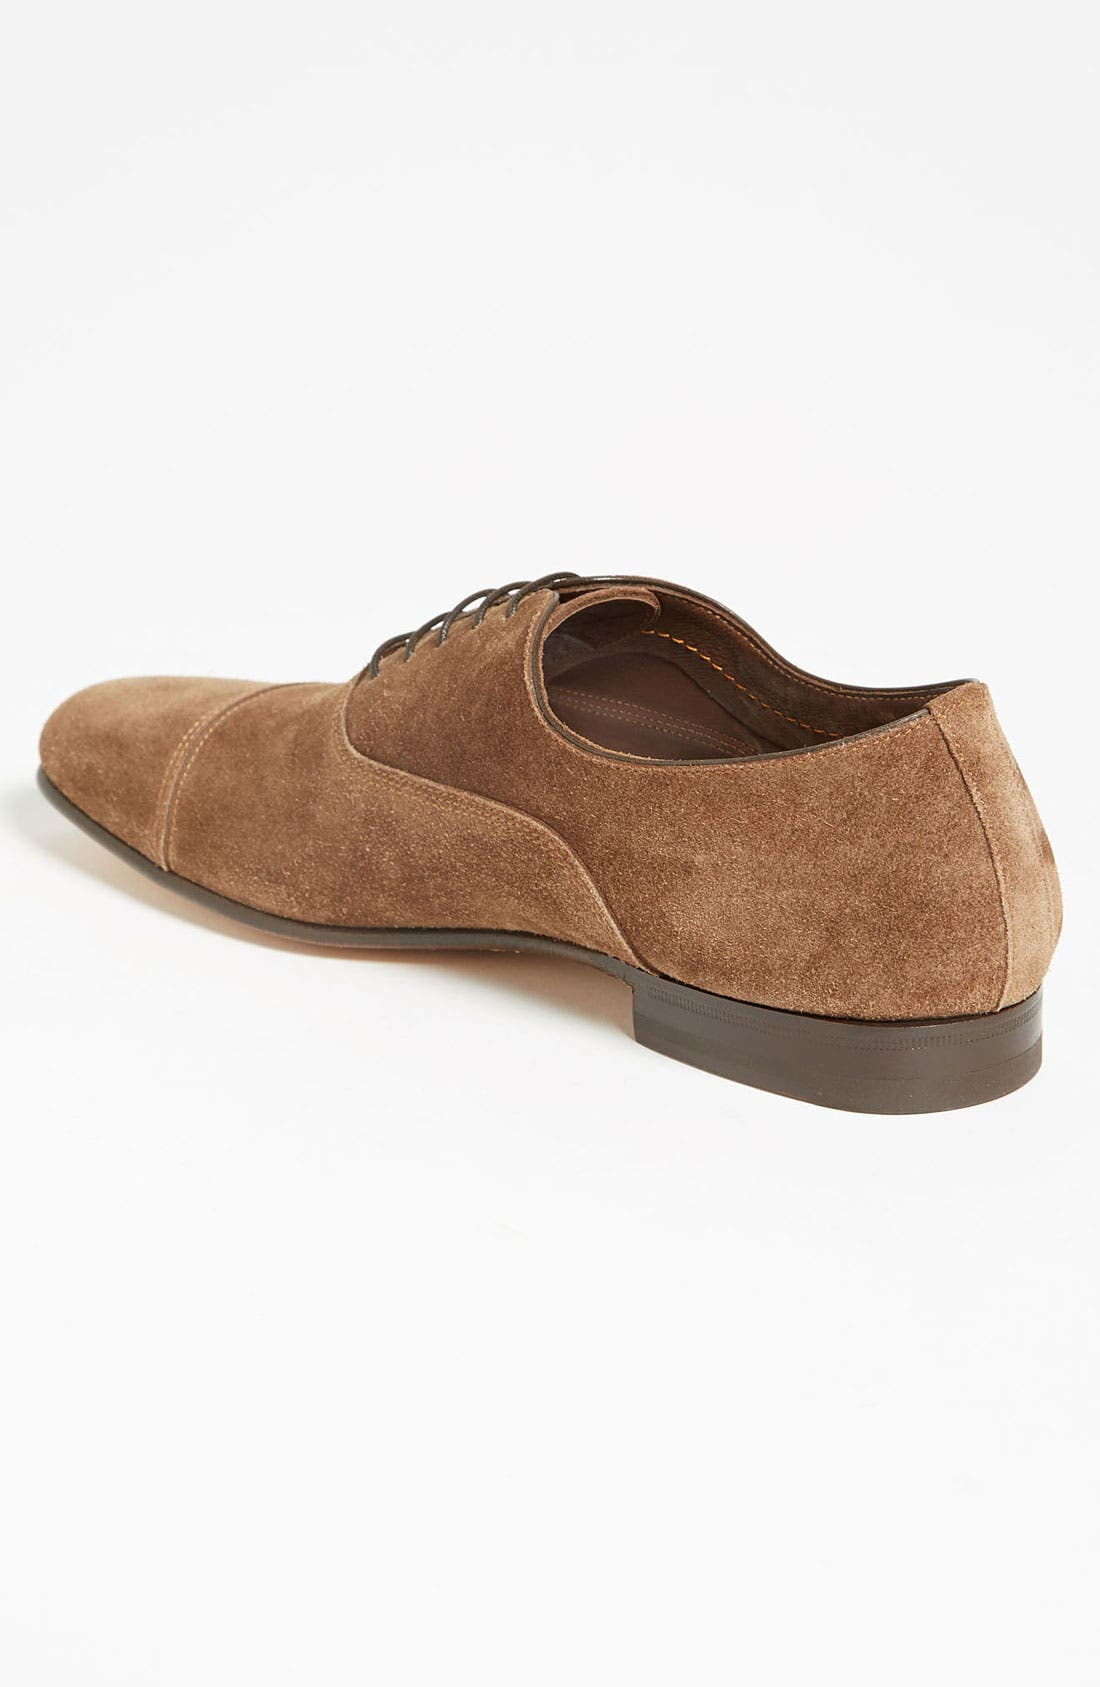 Alternate Image 2  - Santoni 'Turk' Cap Toe Oxford